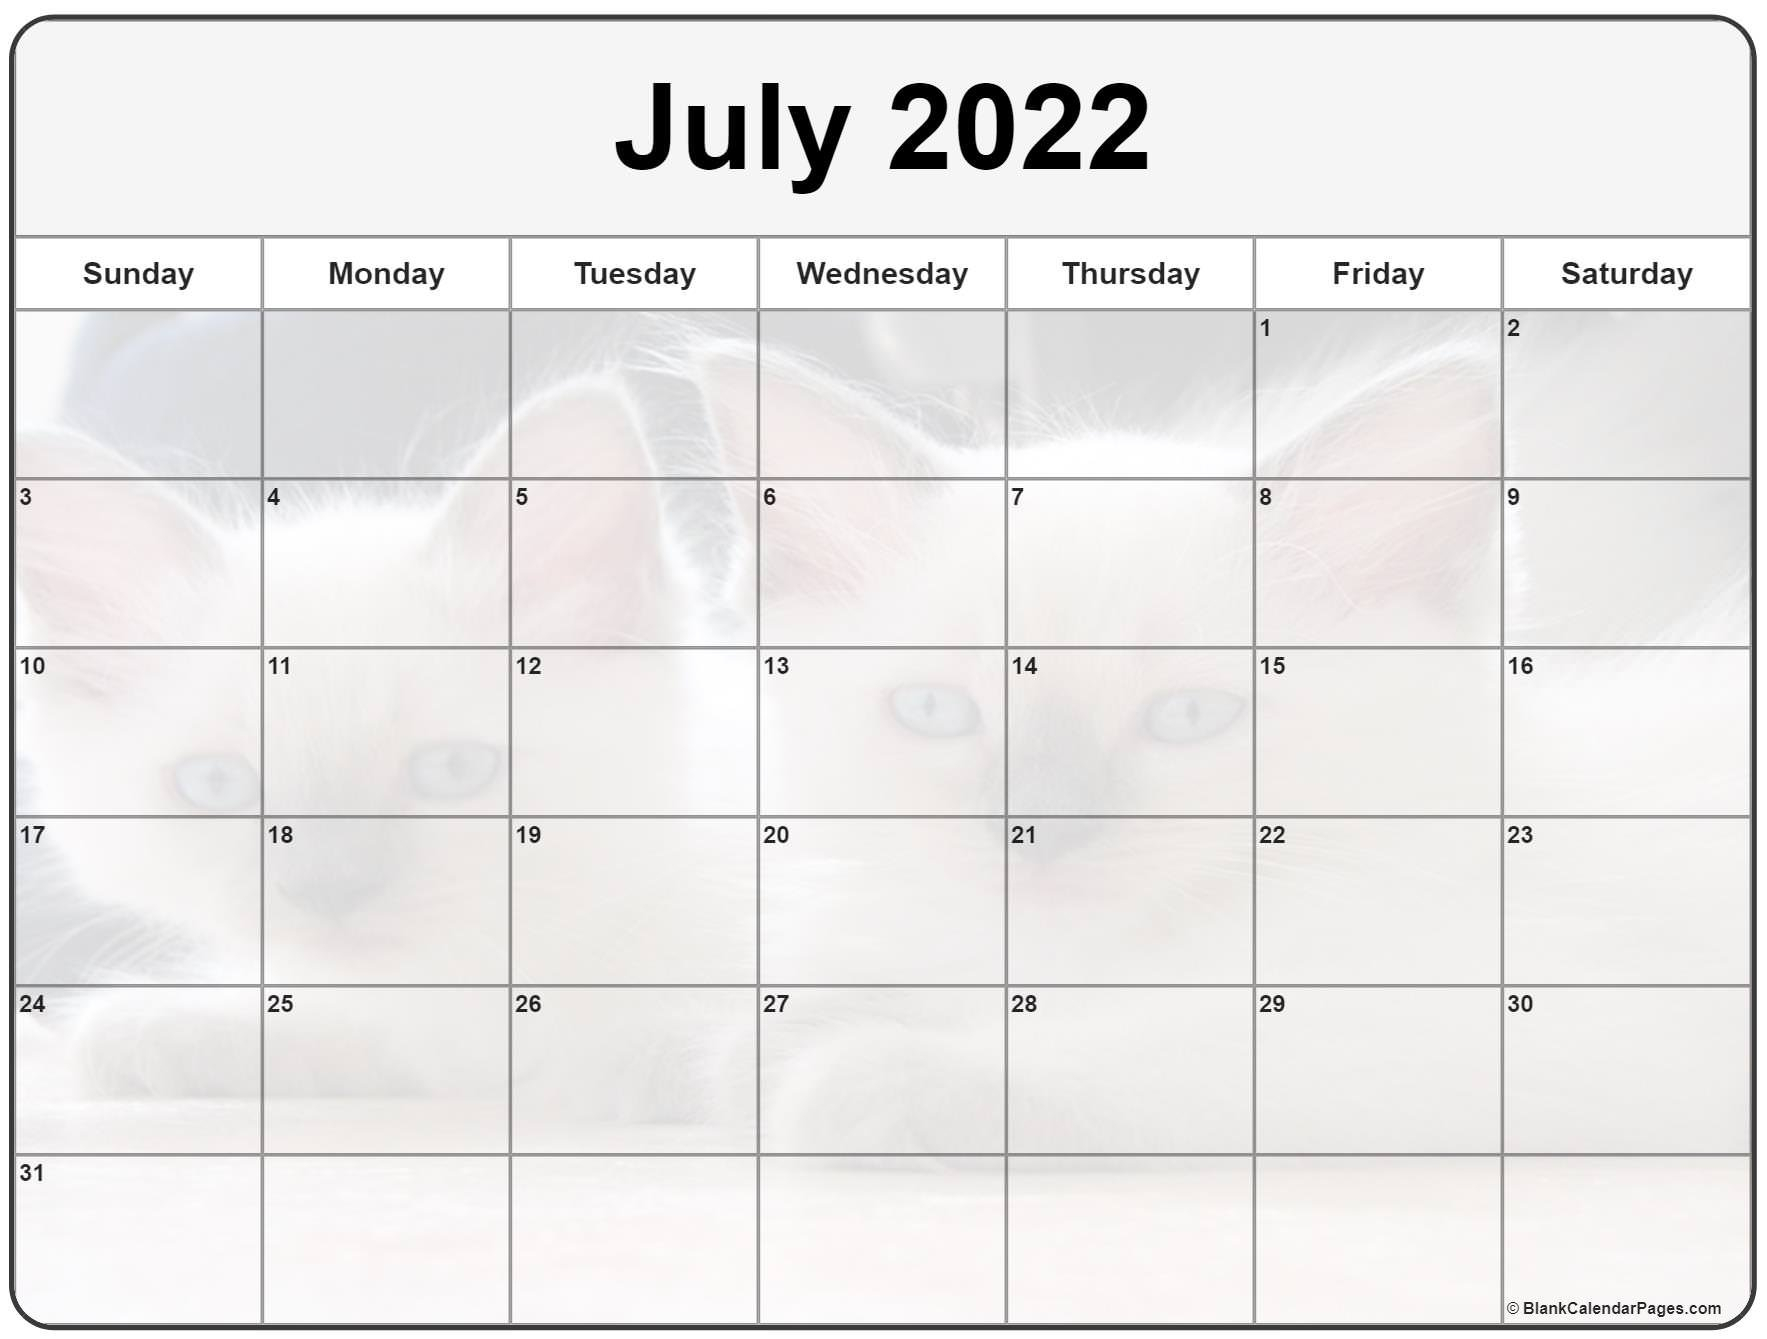 Collection Of July 2022 Photo Calendars With Image Filters. throughout Print July 2022 Calendar Graphics